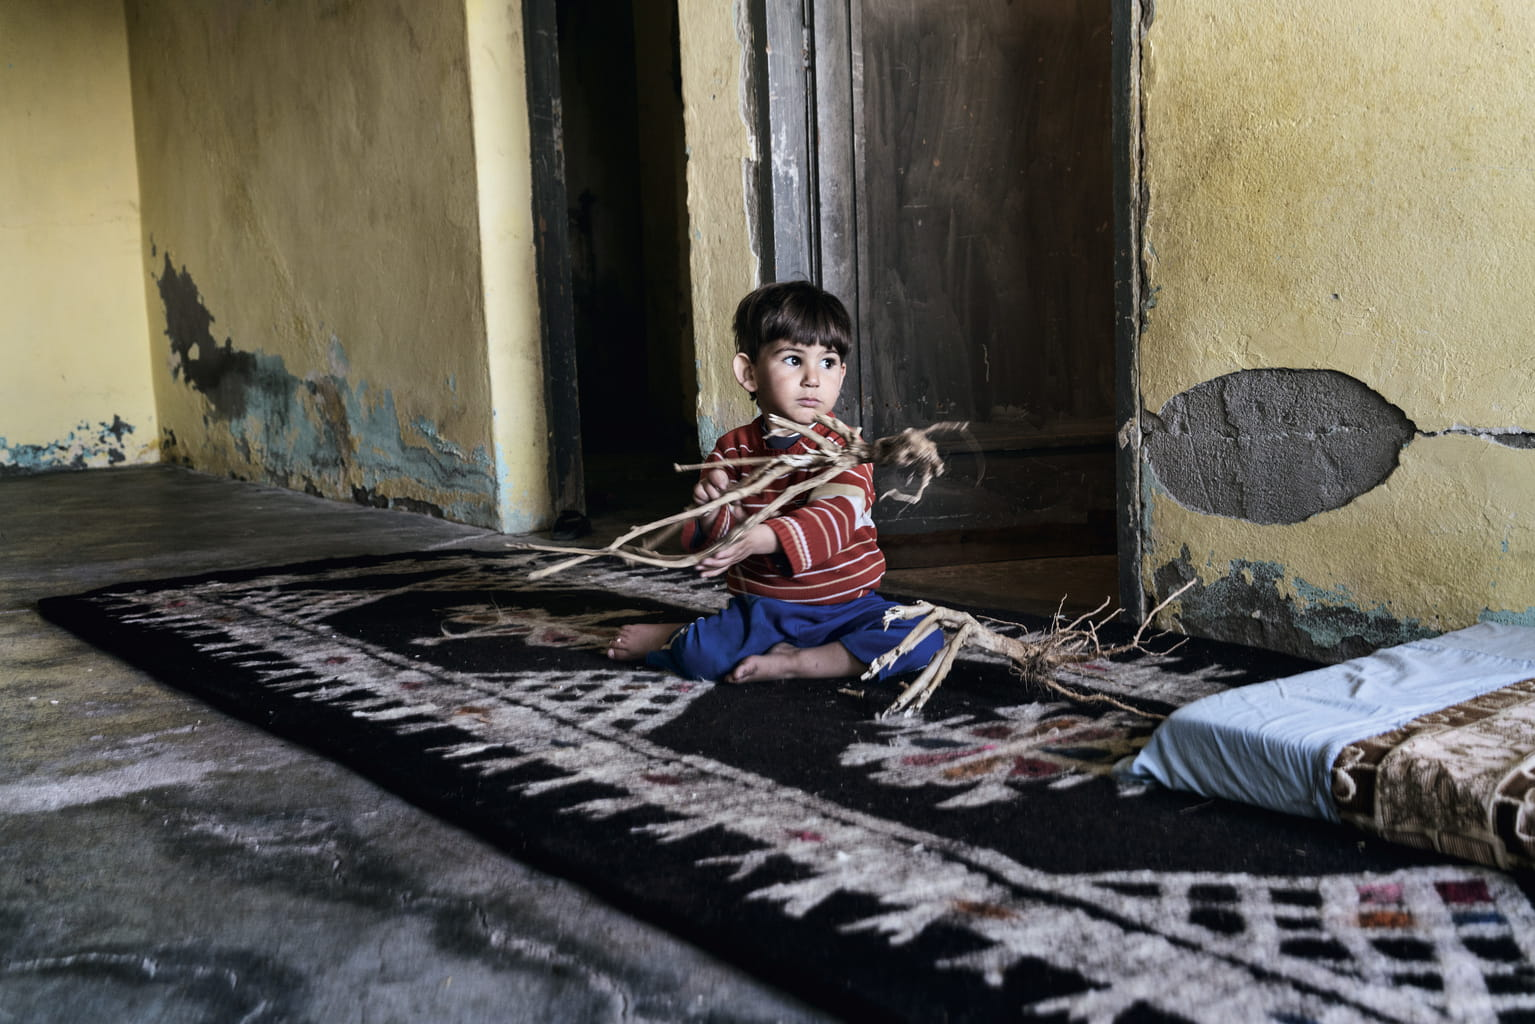 December 8, 2015, Reyhanli, Turkey. One of the boys plays with roots, the only toys the children have.